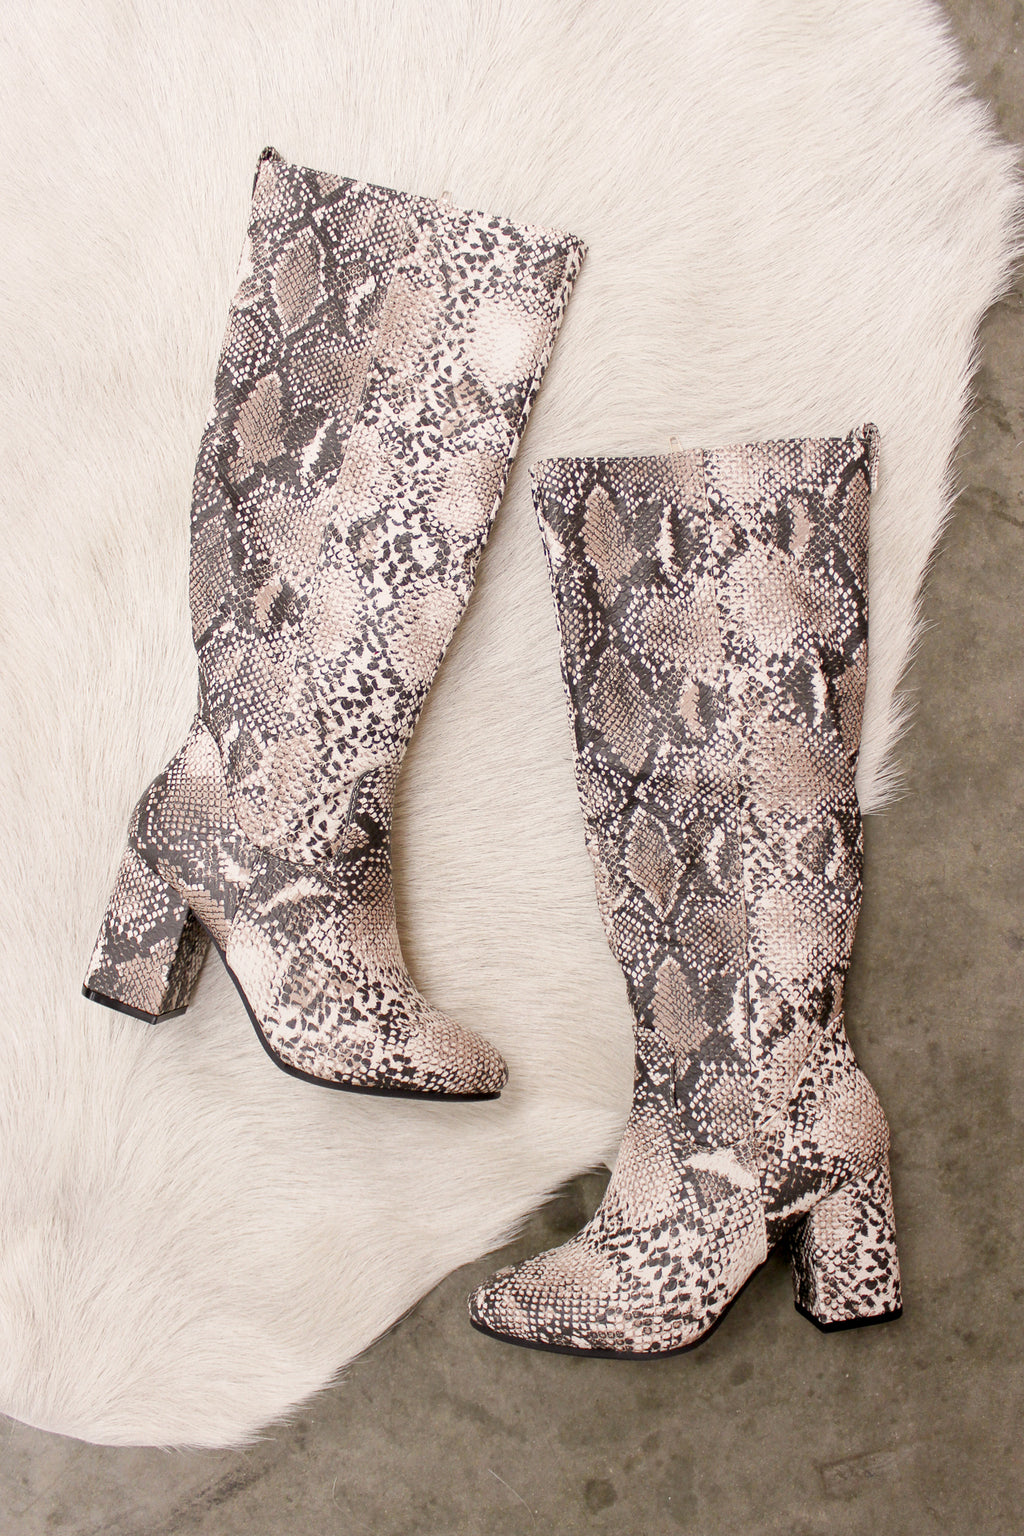 Snakeskin slouchy boots.